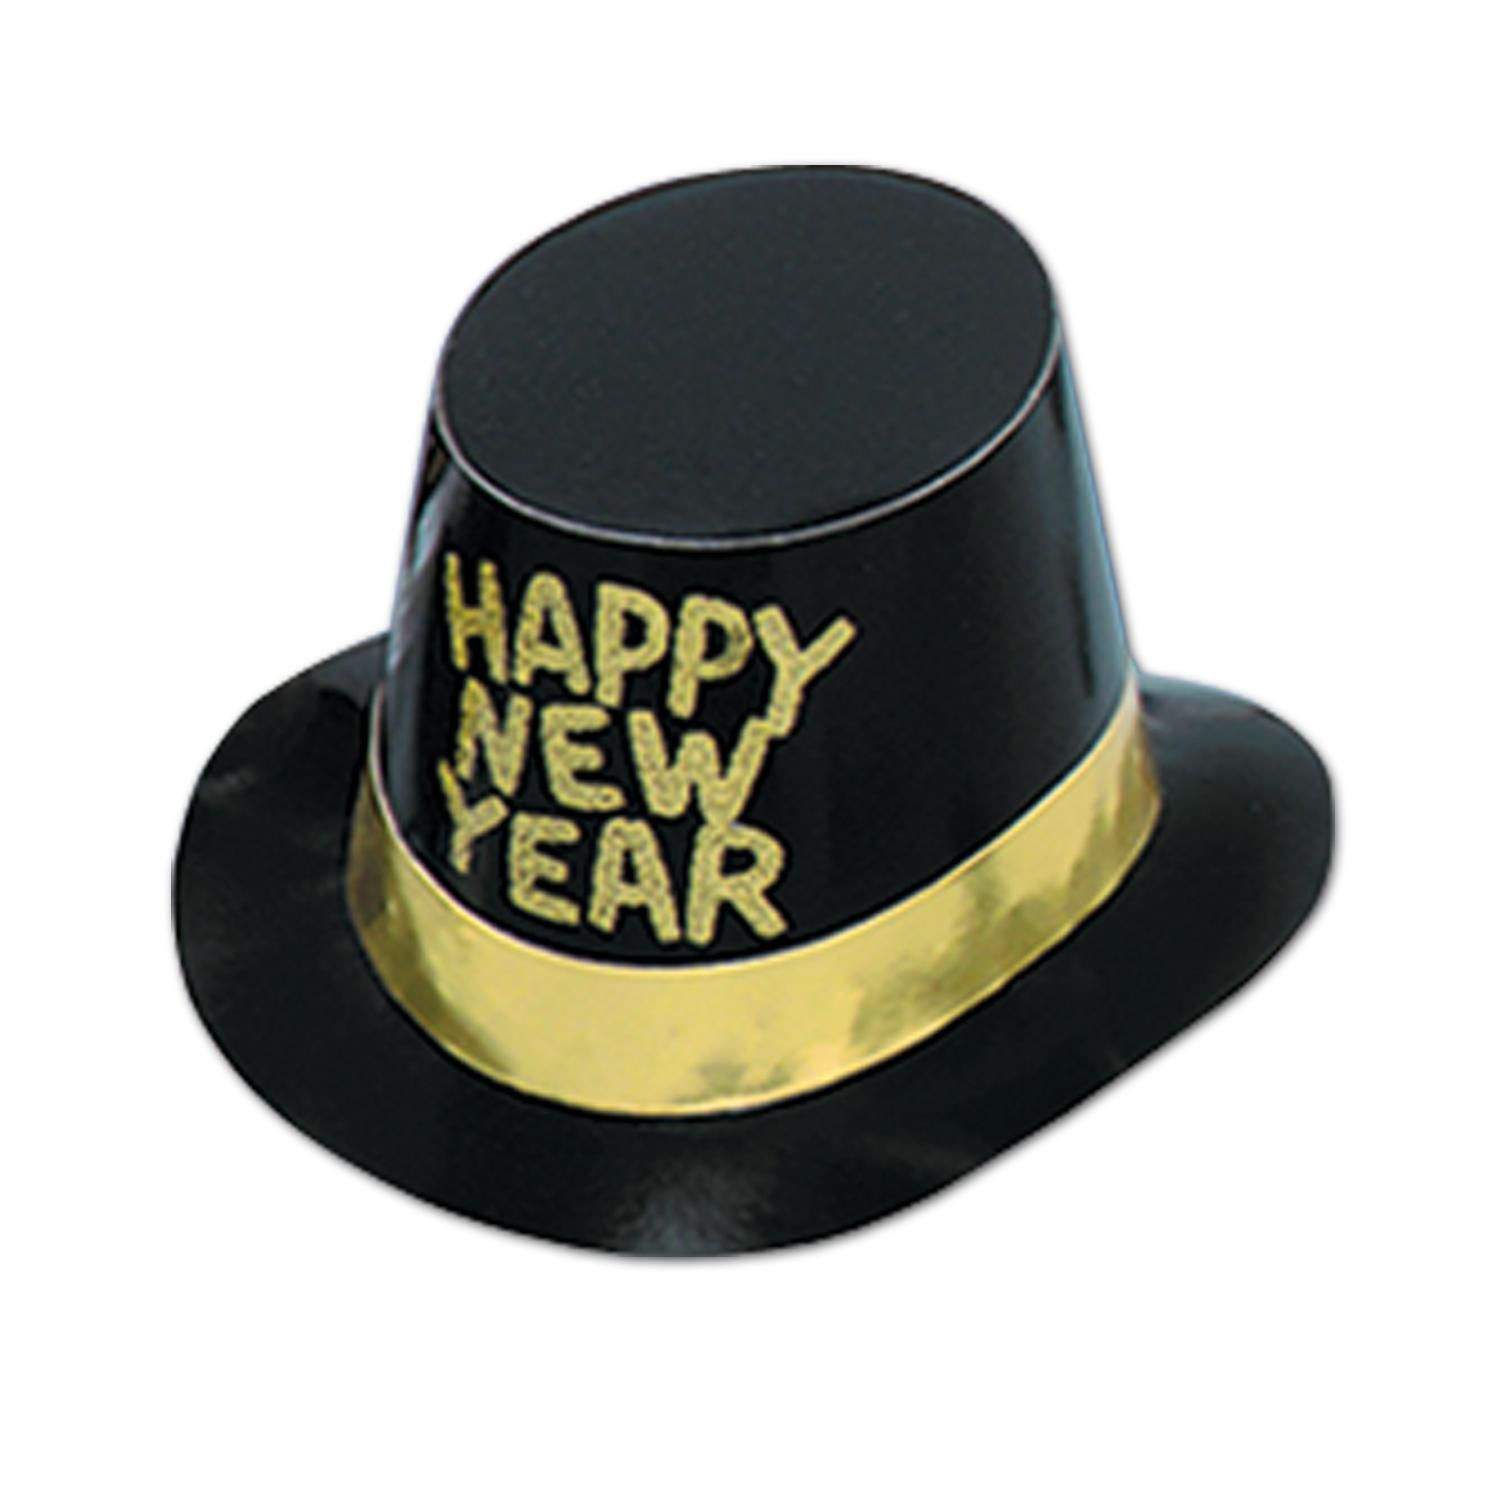 Years eve clipart hat.